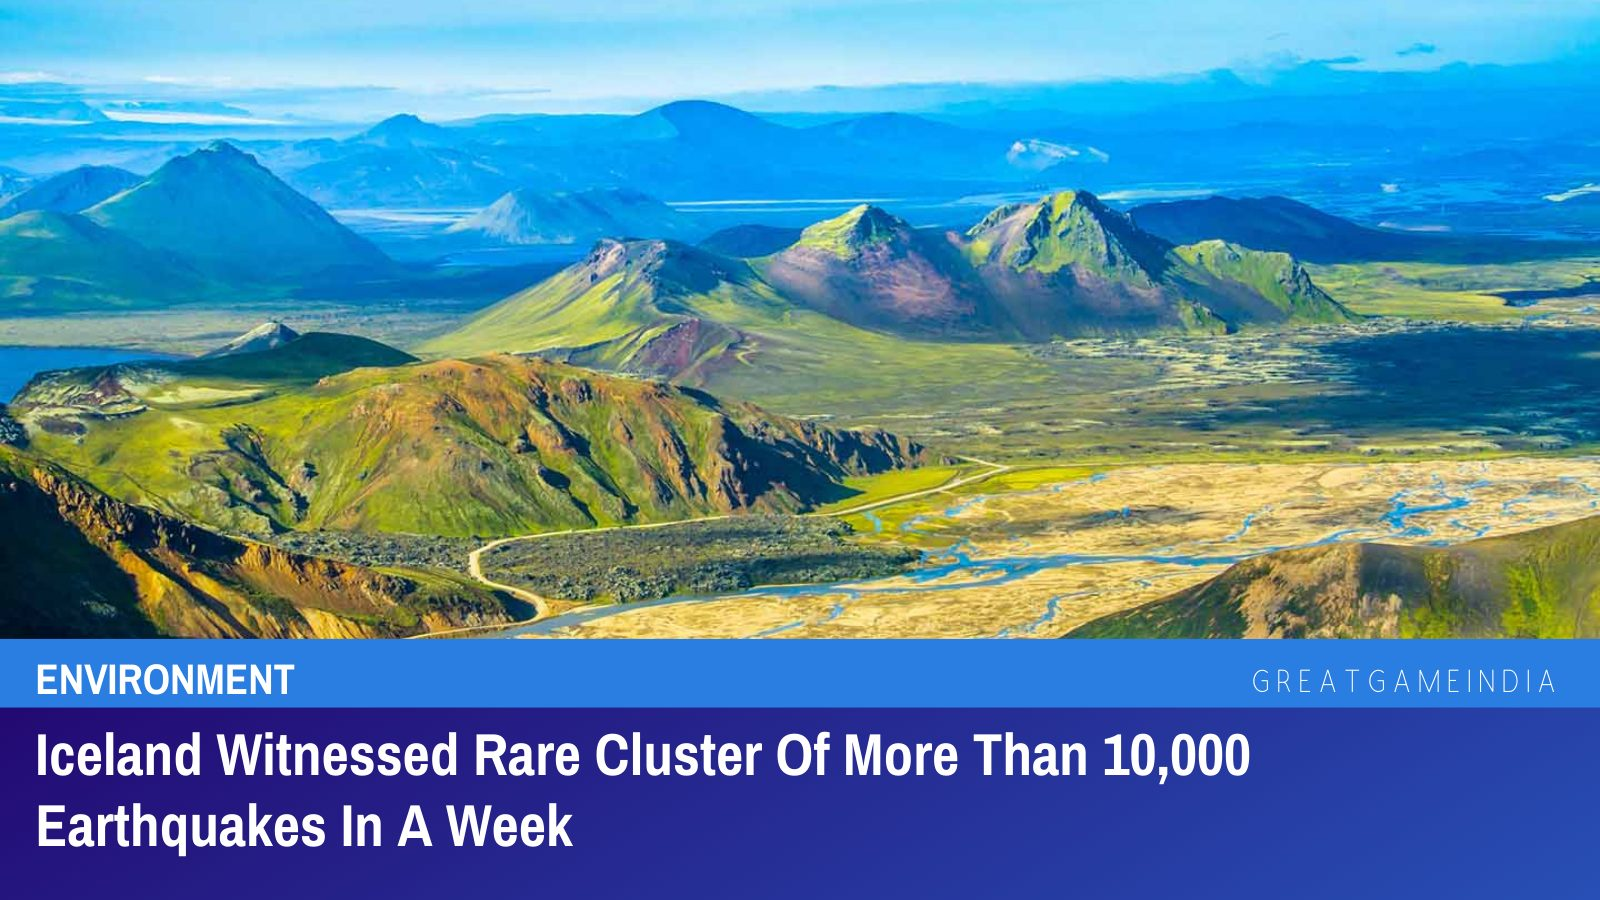 Iceland Witnessed Rare Cluster Of More Than 10,000 Earthquakes In A Week